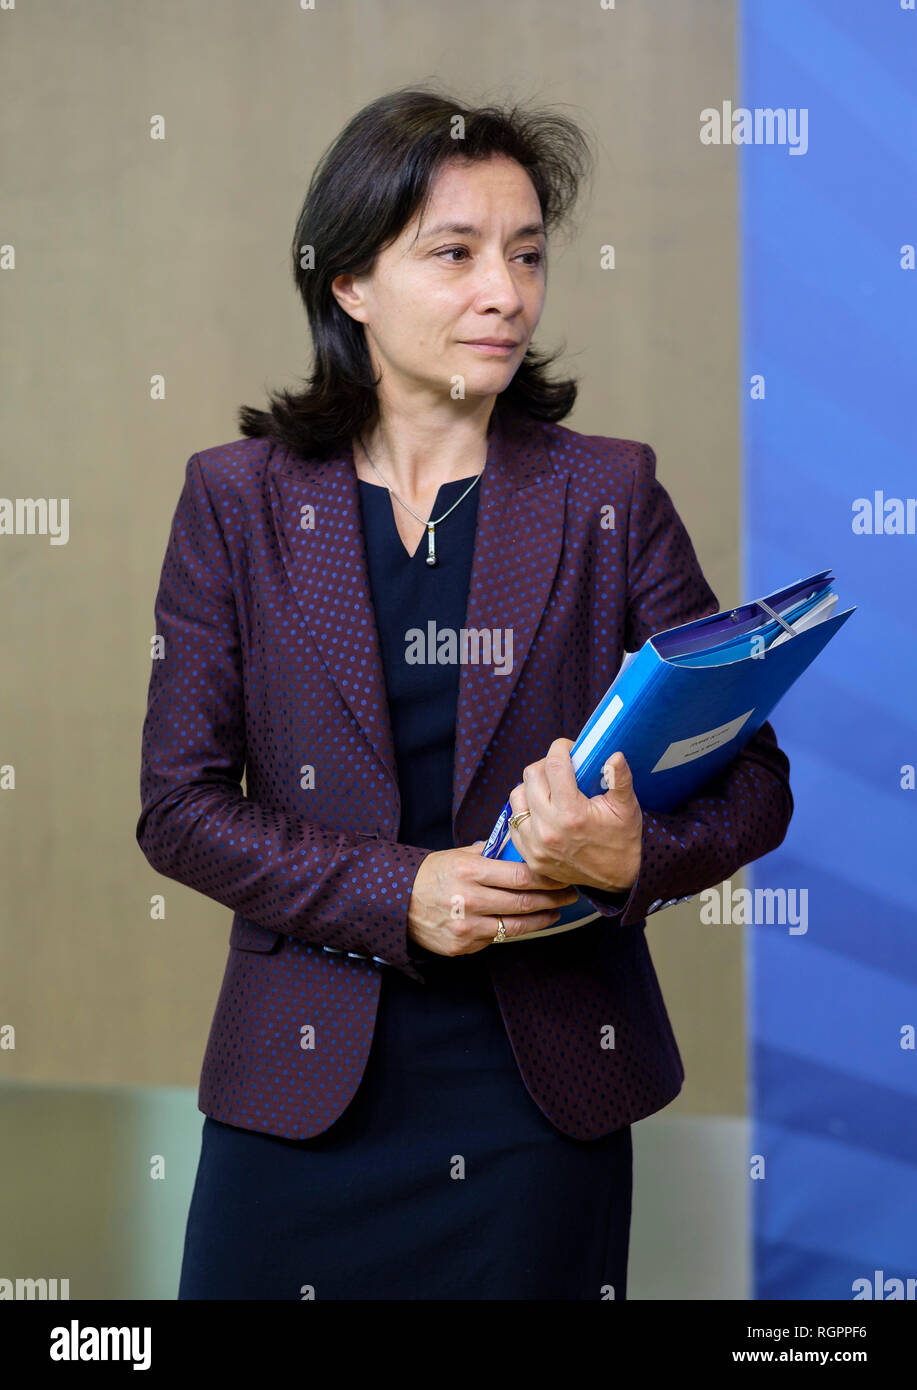 Belgium, Brussels, on 2018/10/15: Delphine Geny-Stephann, former Secretary of State to the Minister of the Economy and Finance - Stock Image